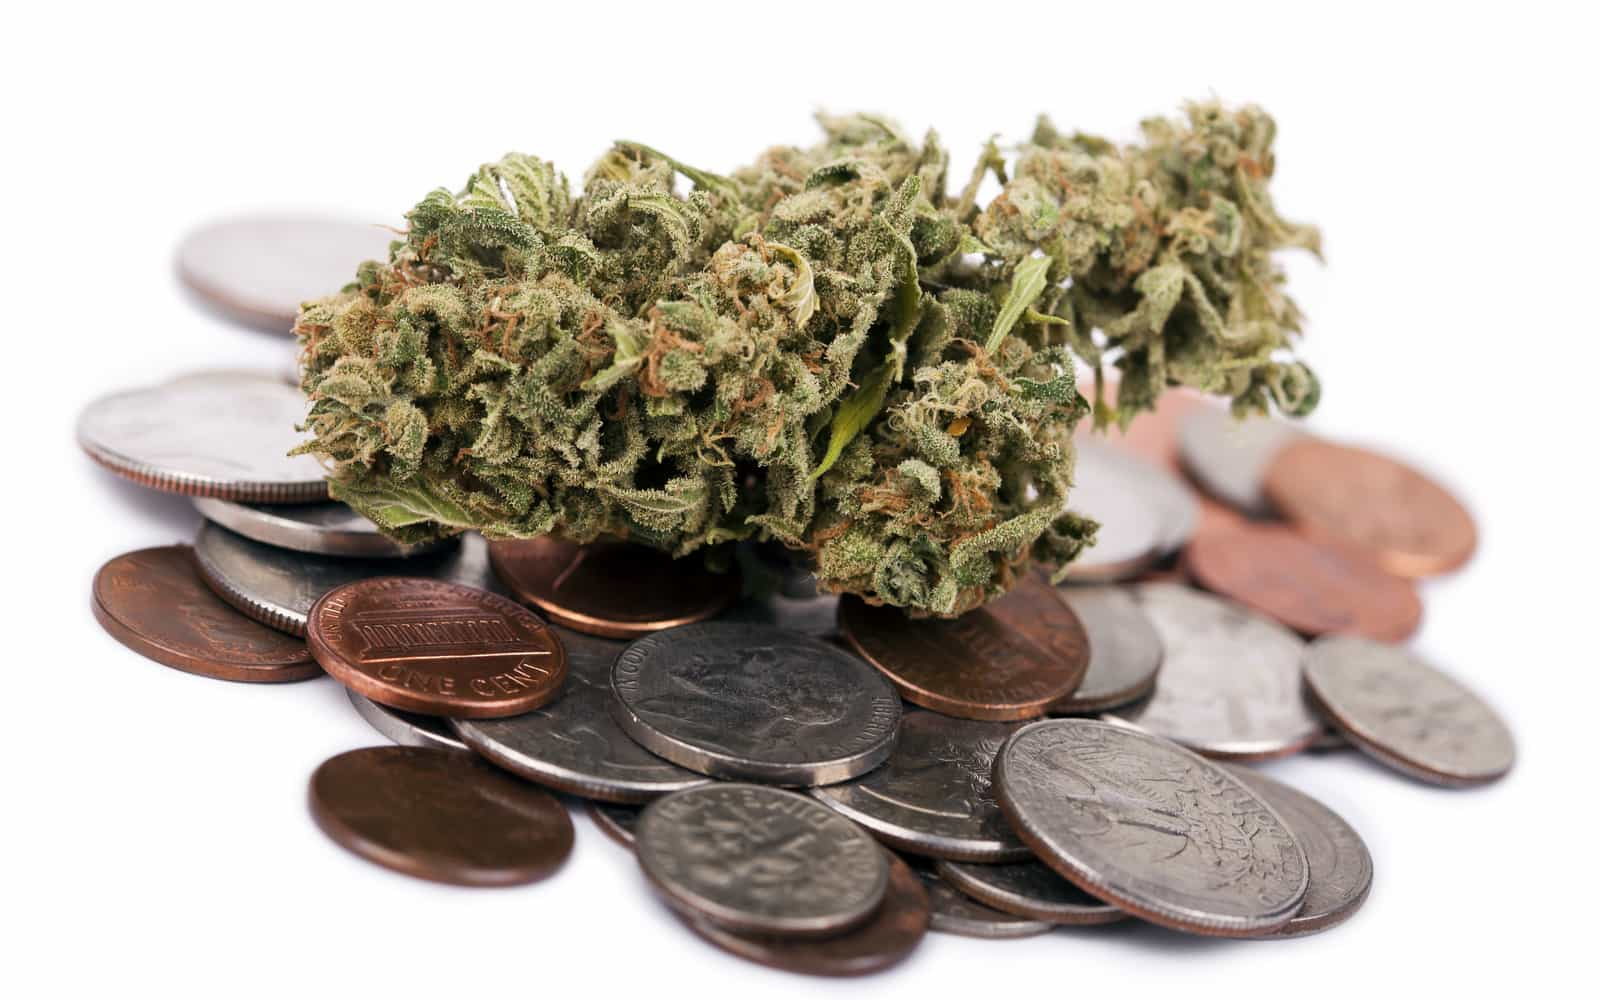 Wholesale Marijuana Prices Continue to Drop - Michael King